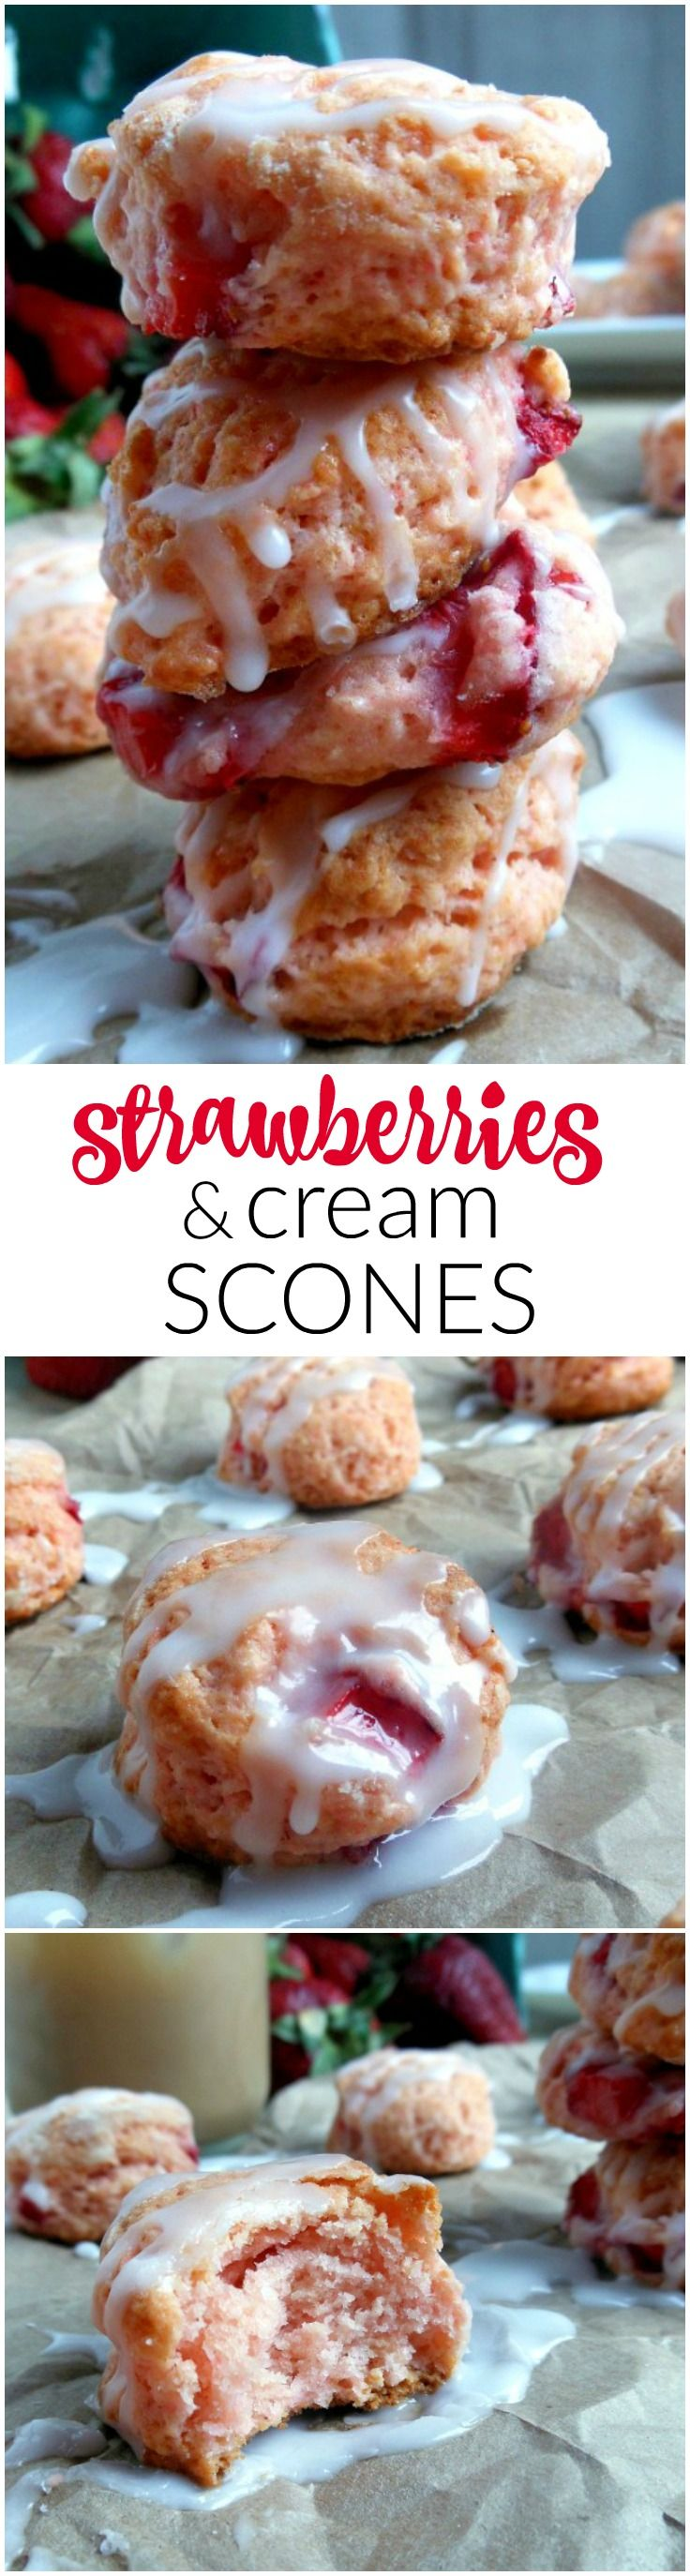 Strawberries and Cream Scones are simple to make and perfect with coffee